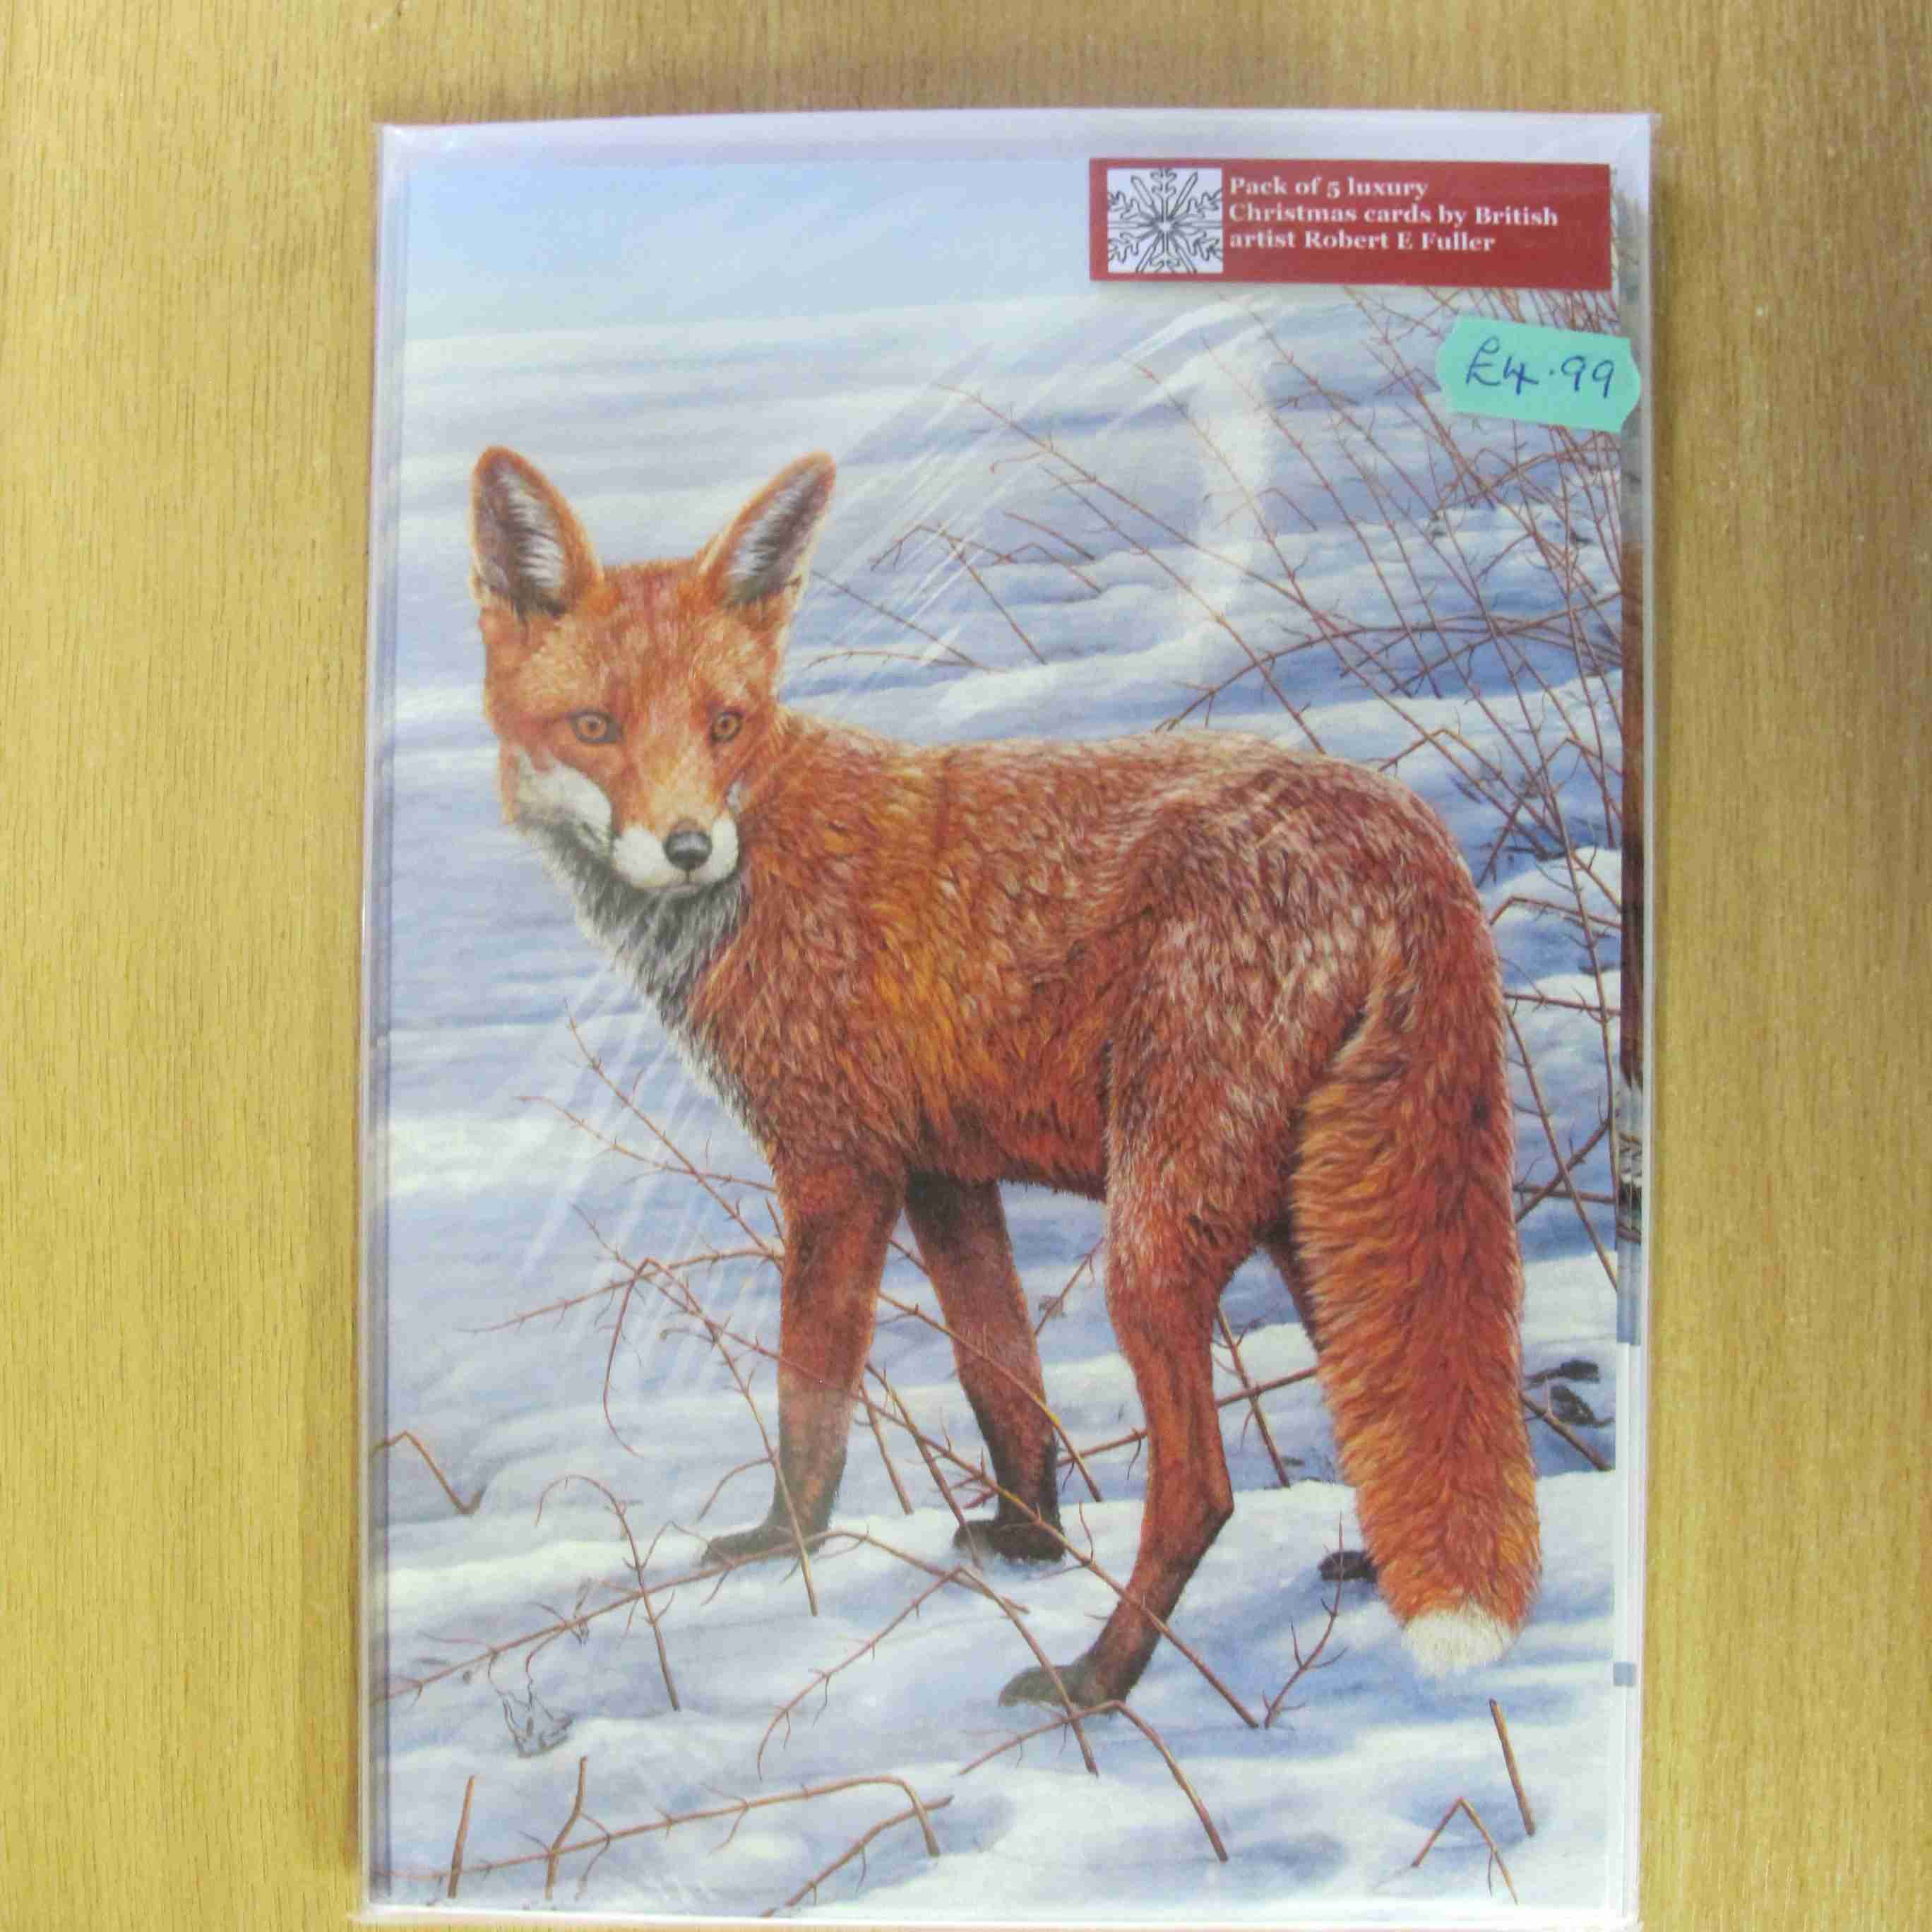 Fox Christmas cards by Robert Fuller - Secret World Wildlife Rescue